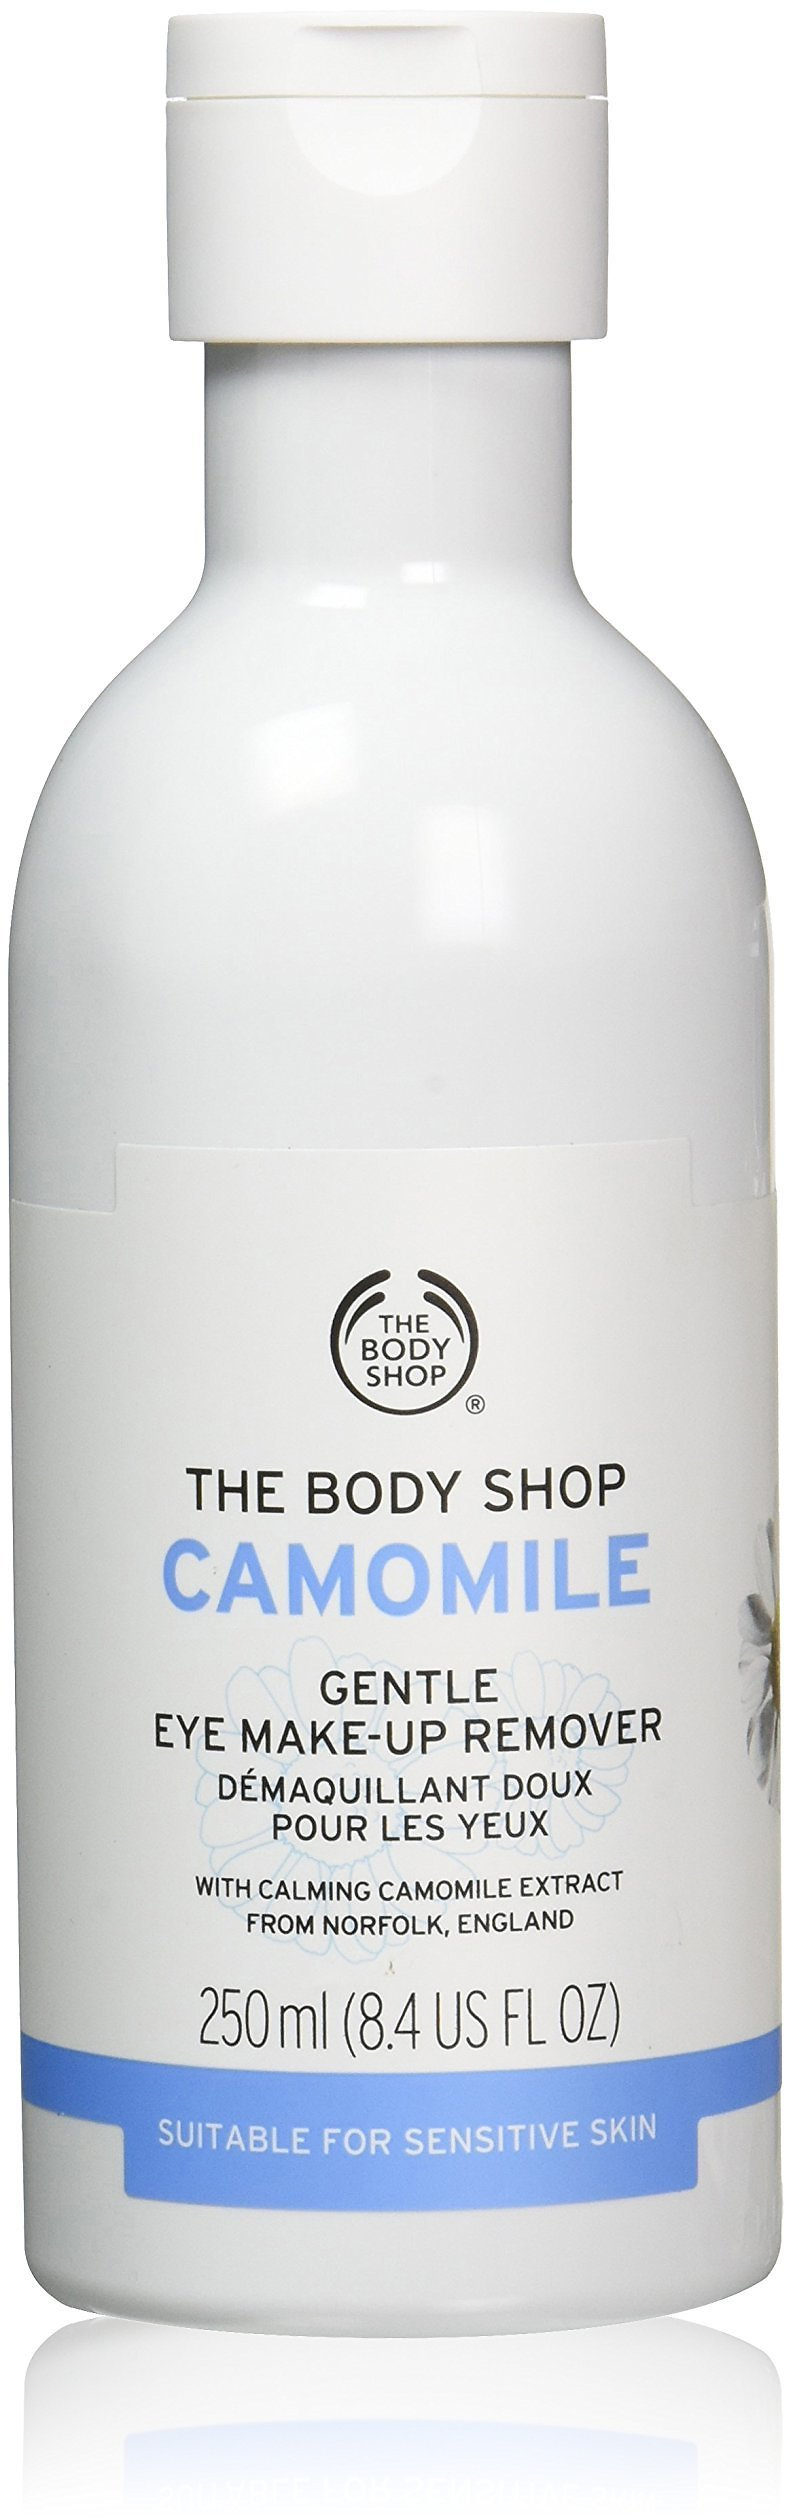 The Body Shop Camomile Gentle Eye Makeup Remover 8.4 Fl